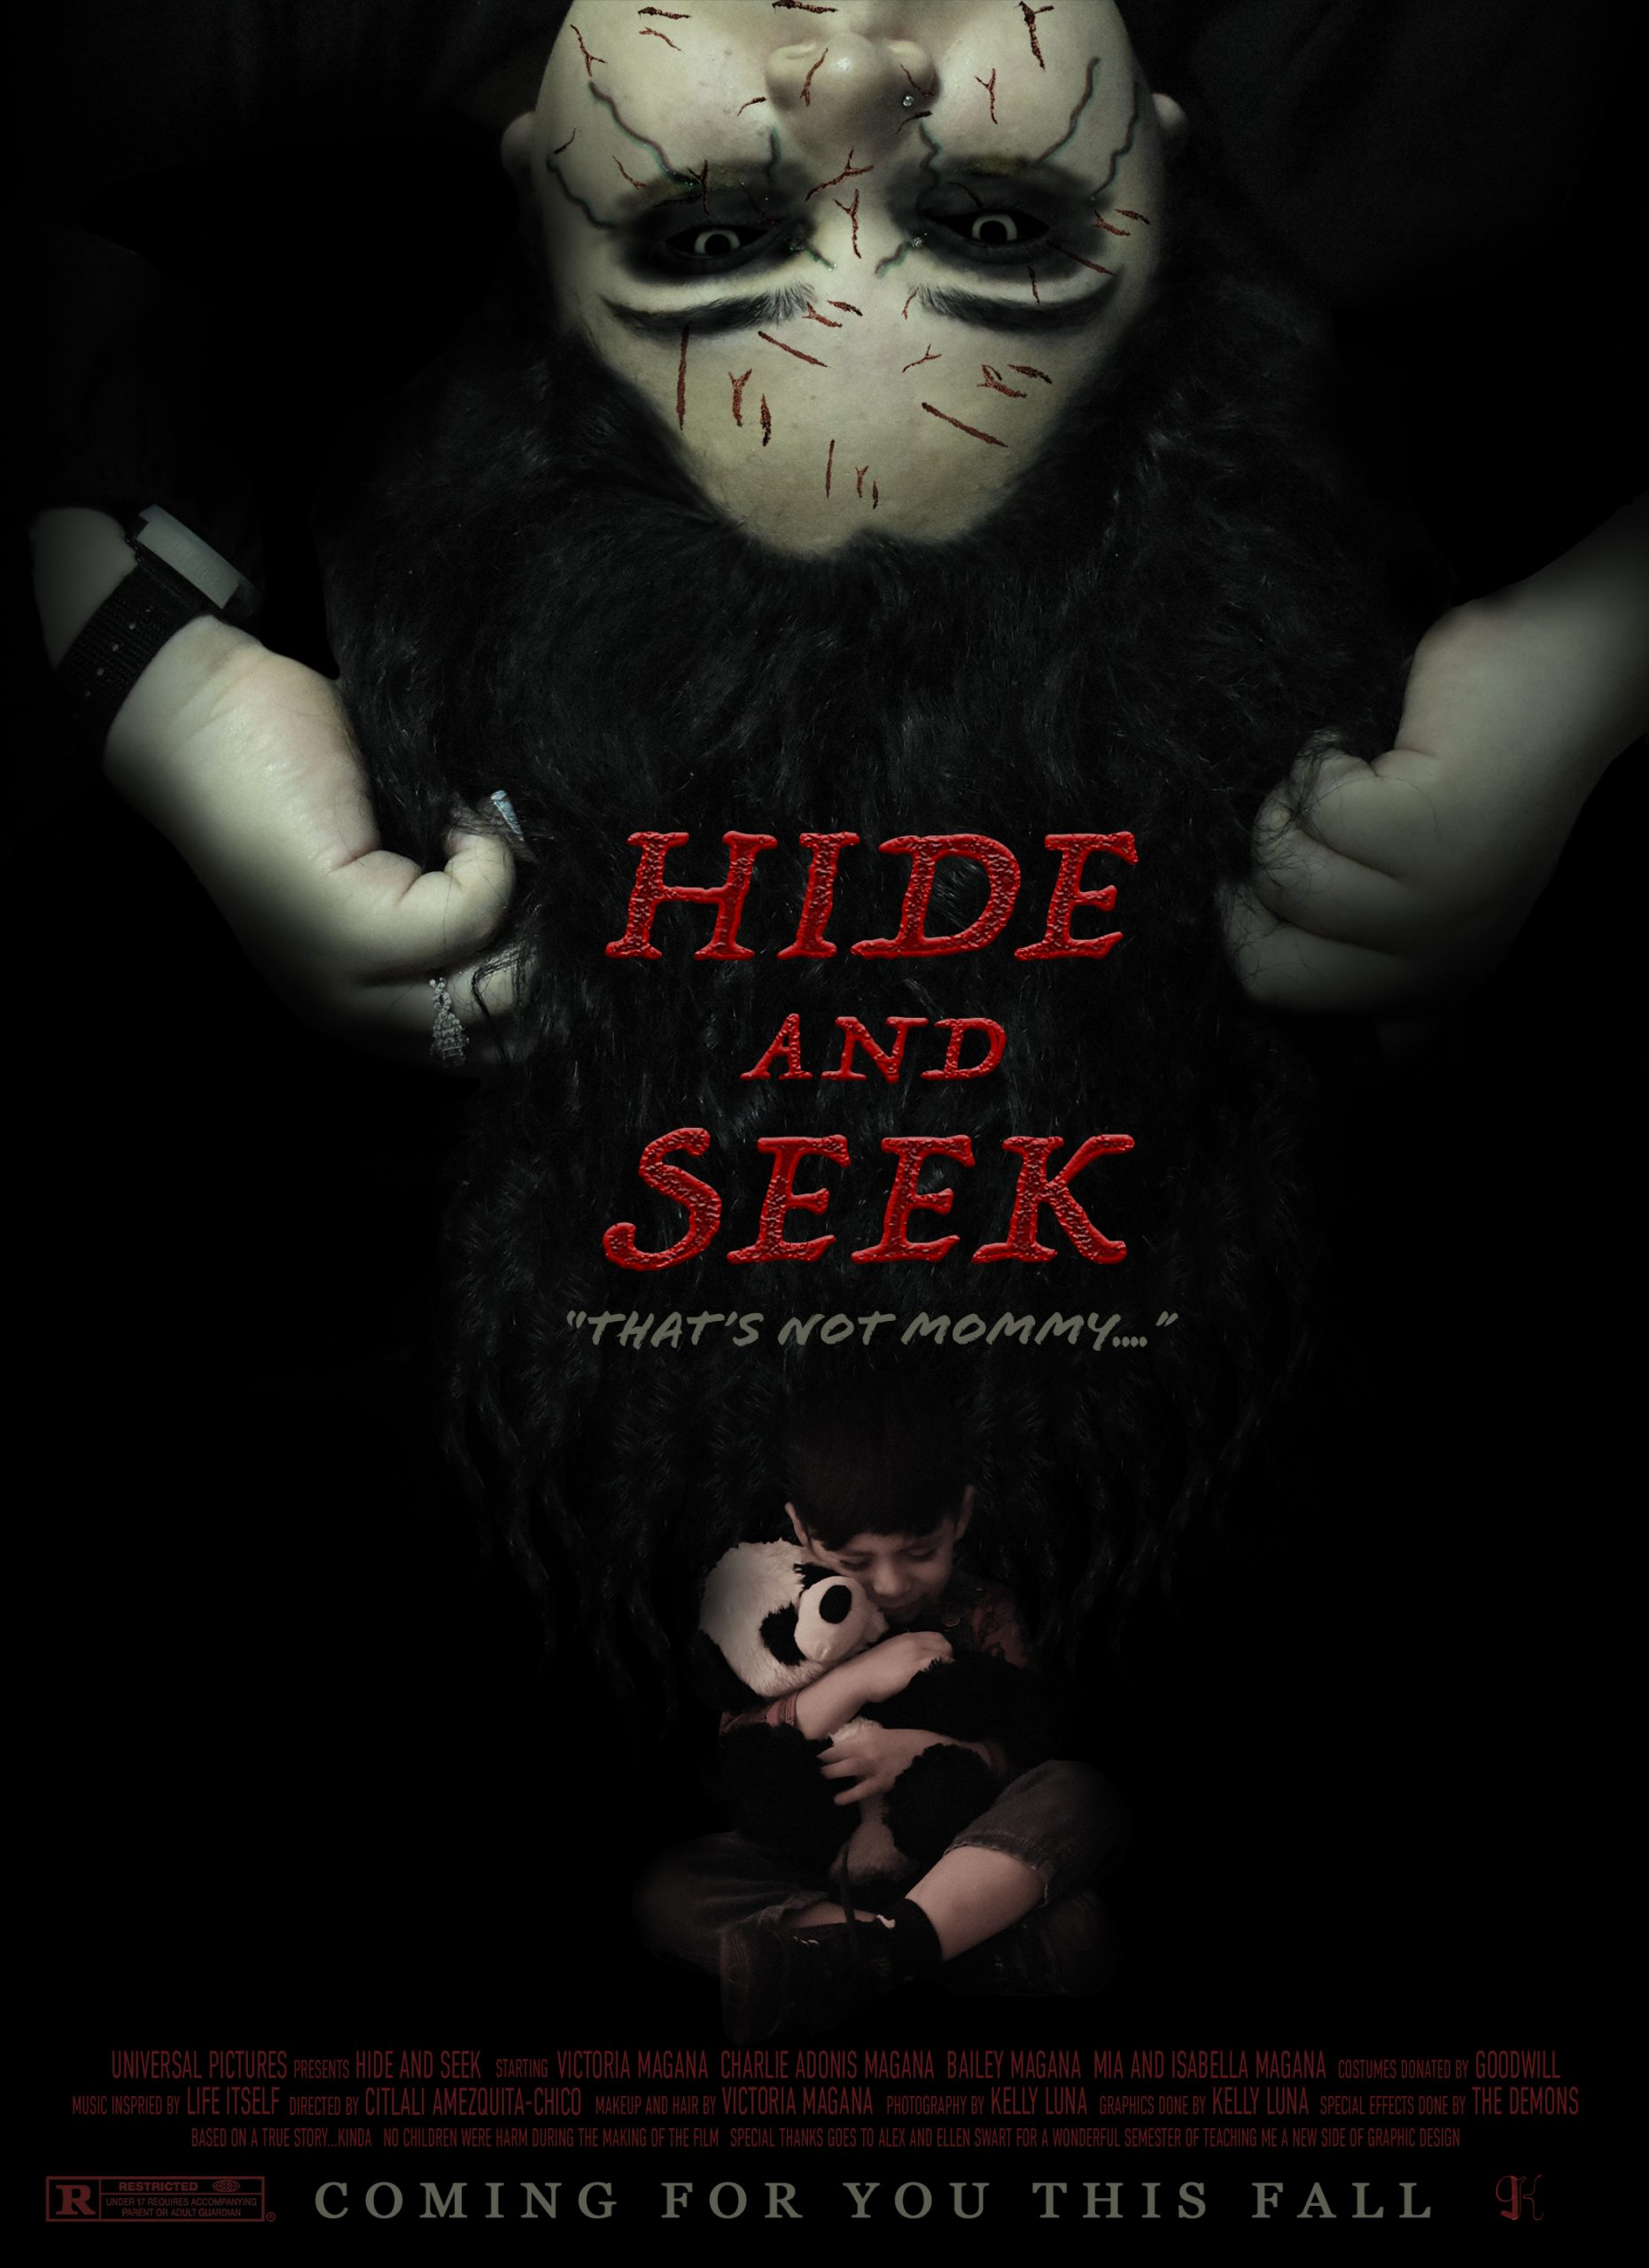 Horror movie poster where child hold bear scared while  a scary man is upside down  on top of poster